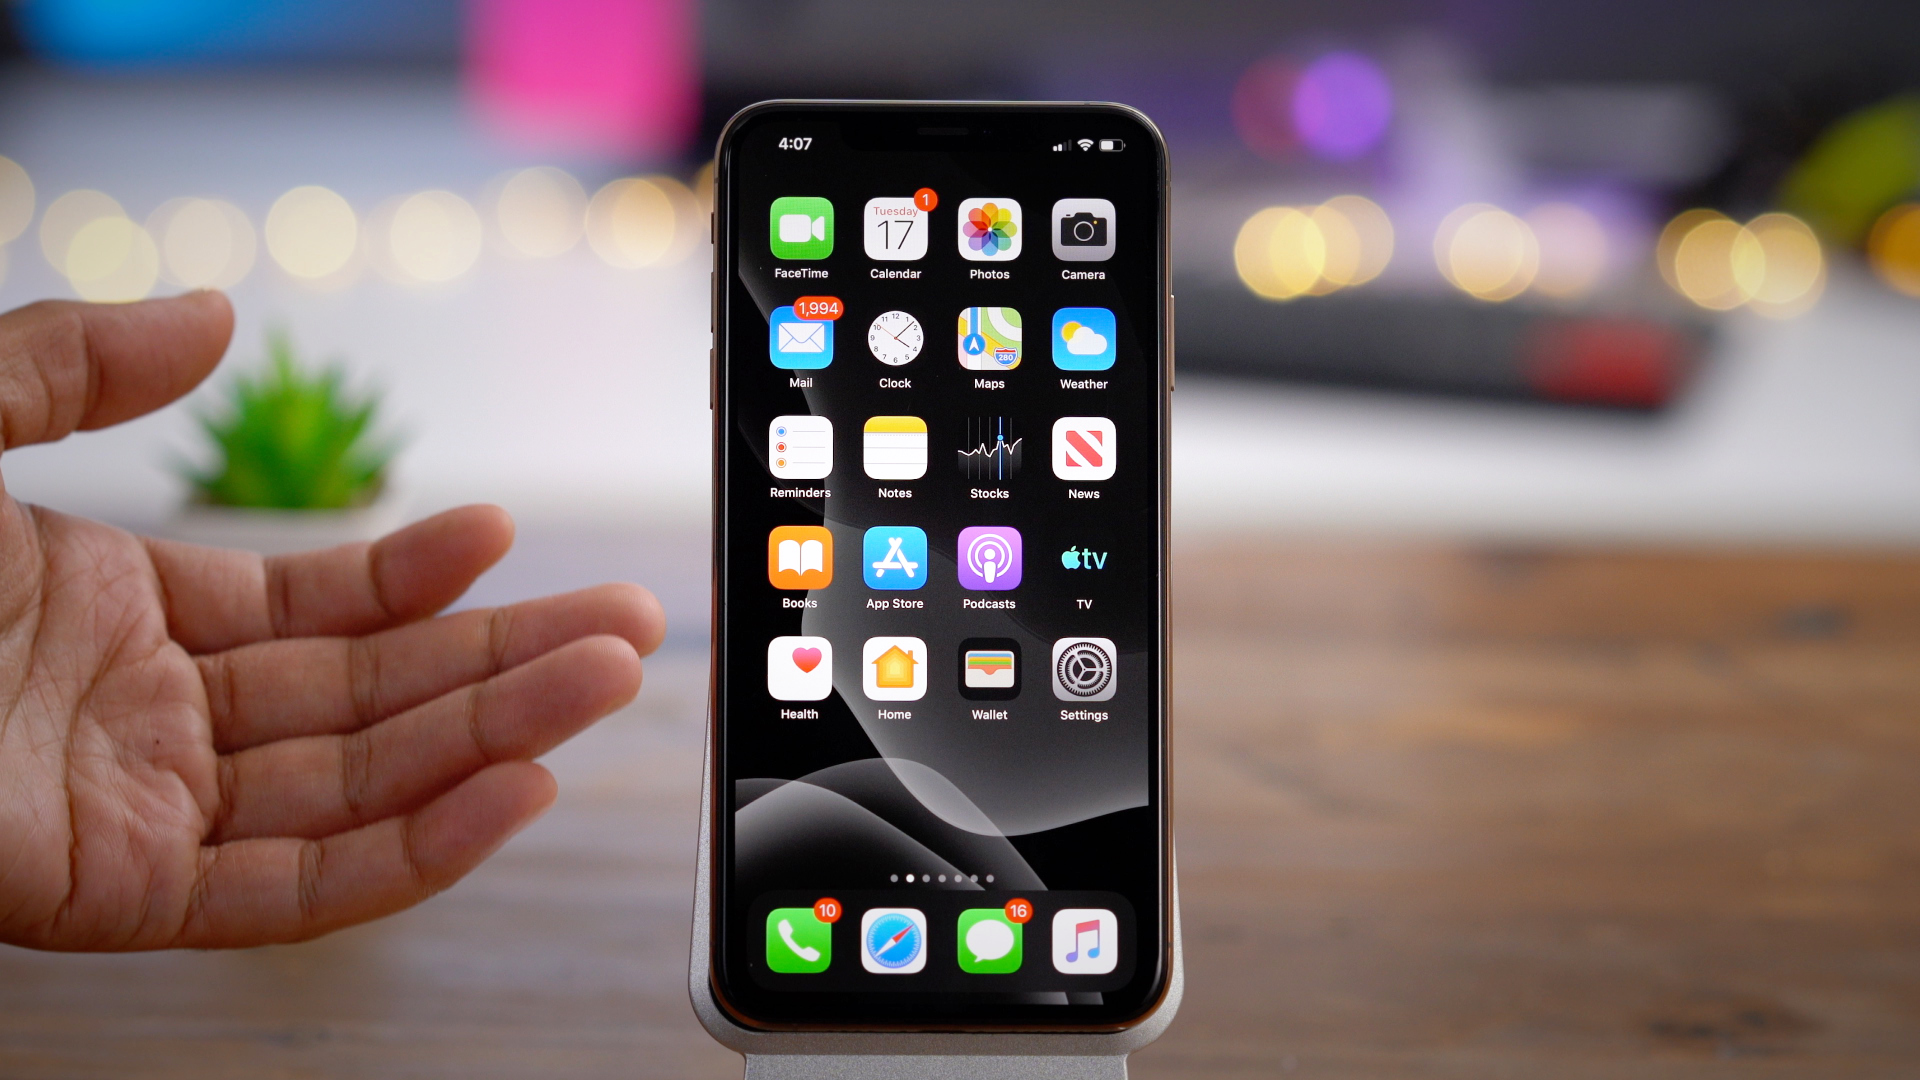 iOS 13: Hands-on with the top new features and changes for iPhone [Video] - RapidAPI